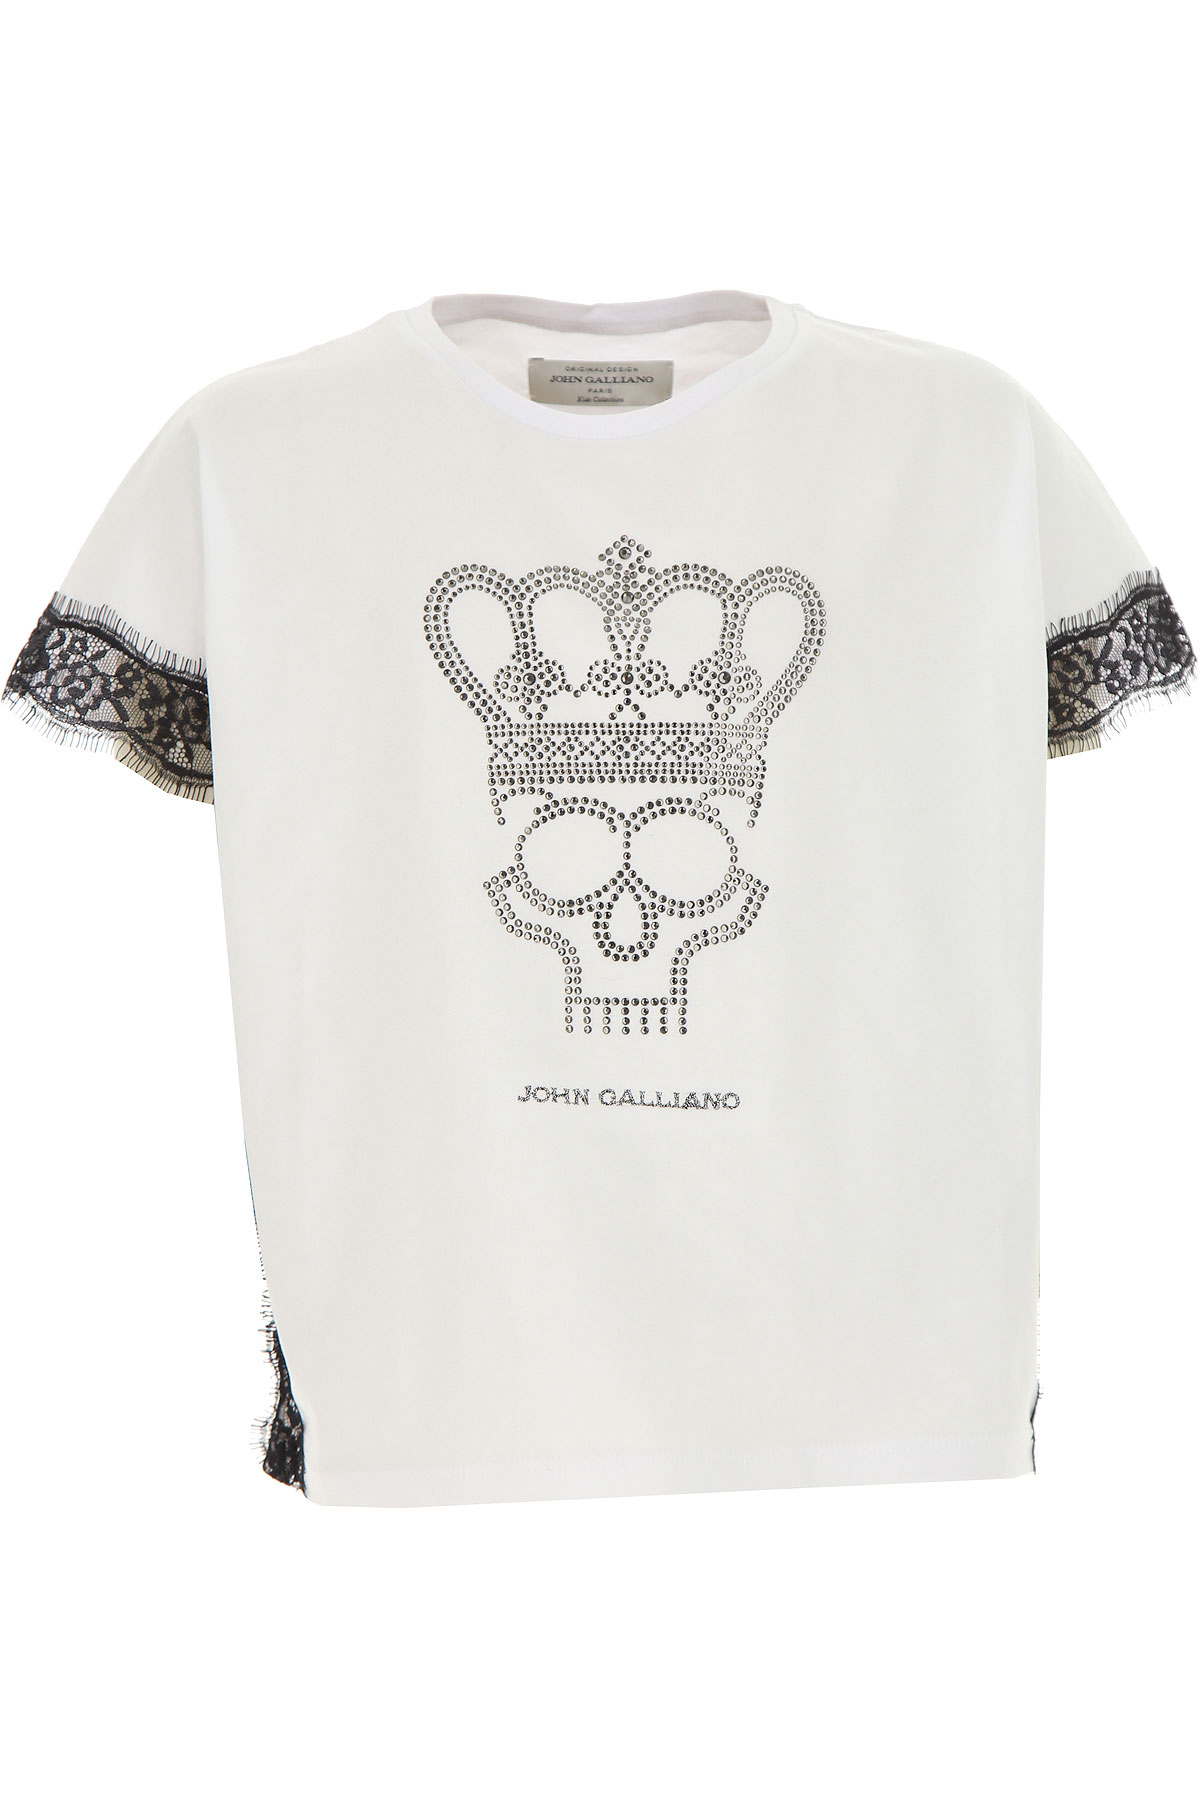 Galliano Kids T-Shirt for Girls On Sale, White, Cotton, 2019, 14Y 6Y 8Y